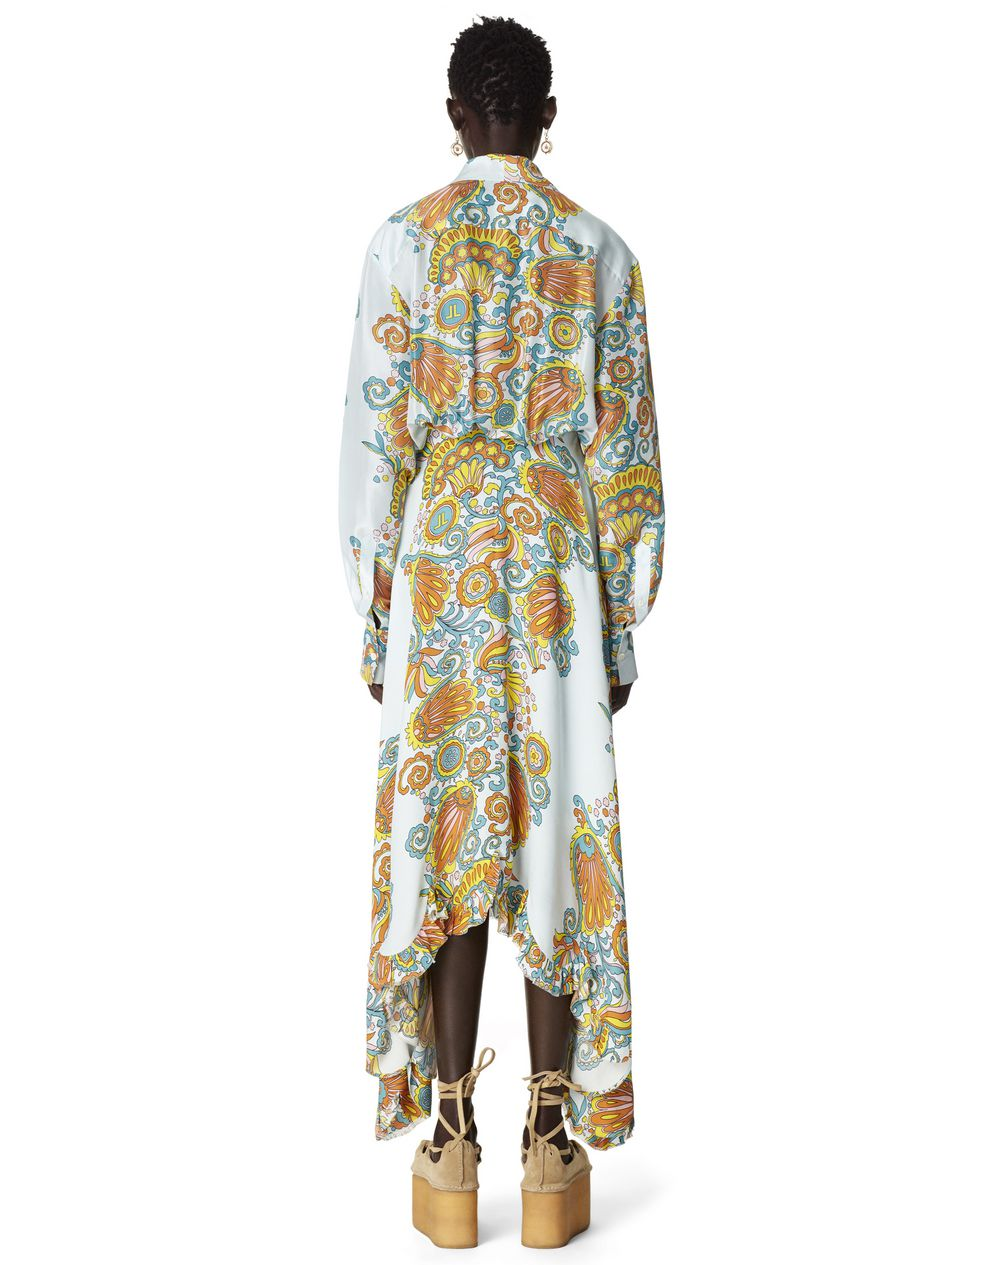 LONG FLOWER SWIRL PRINT SILK DRESS - Lanvin